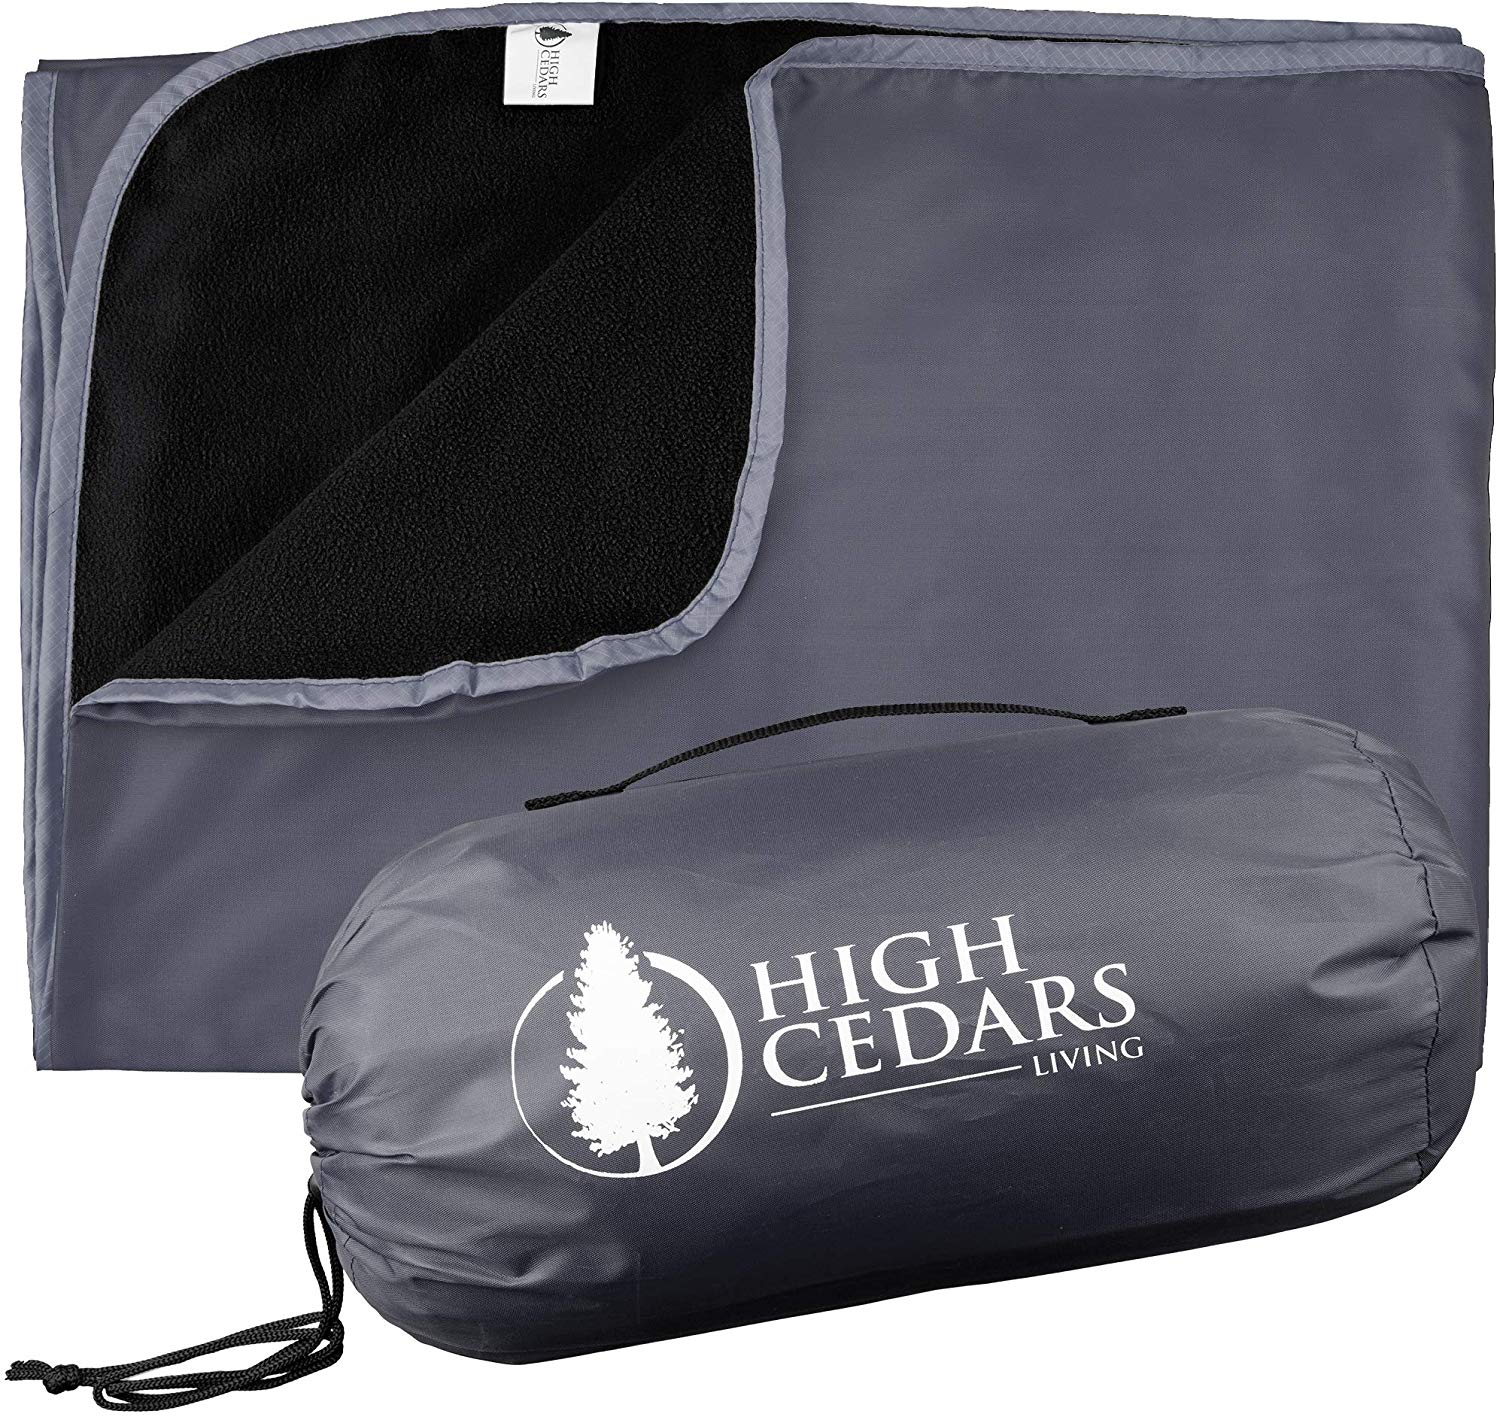 High Cedars Living XL Outdoor Waterproof Blanket, Stadium Throw with Fleece, Windproof, Rainproof, Sandproof Mat